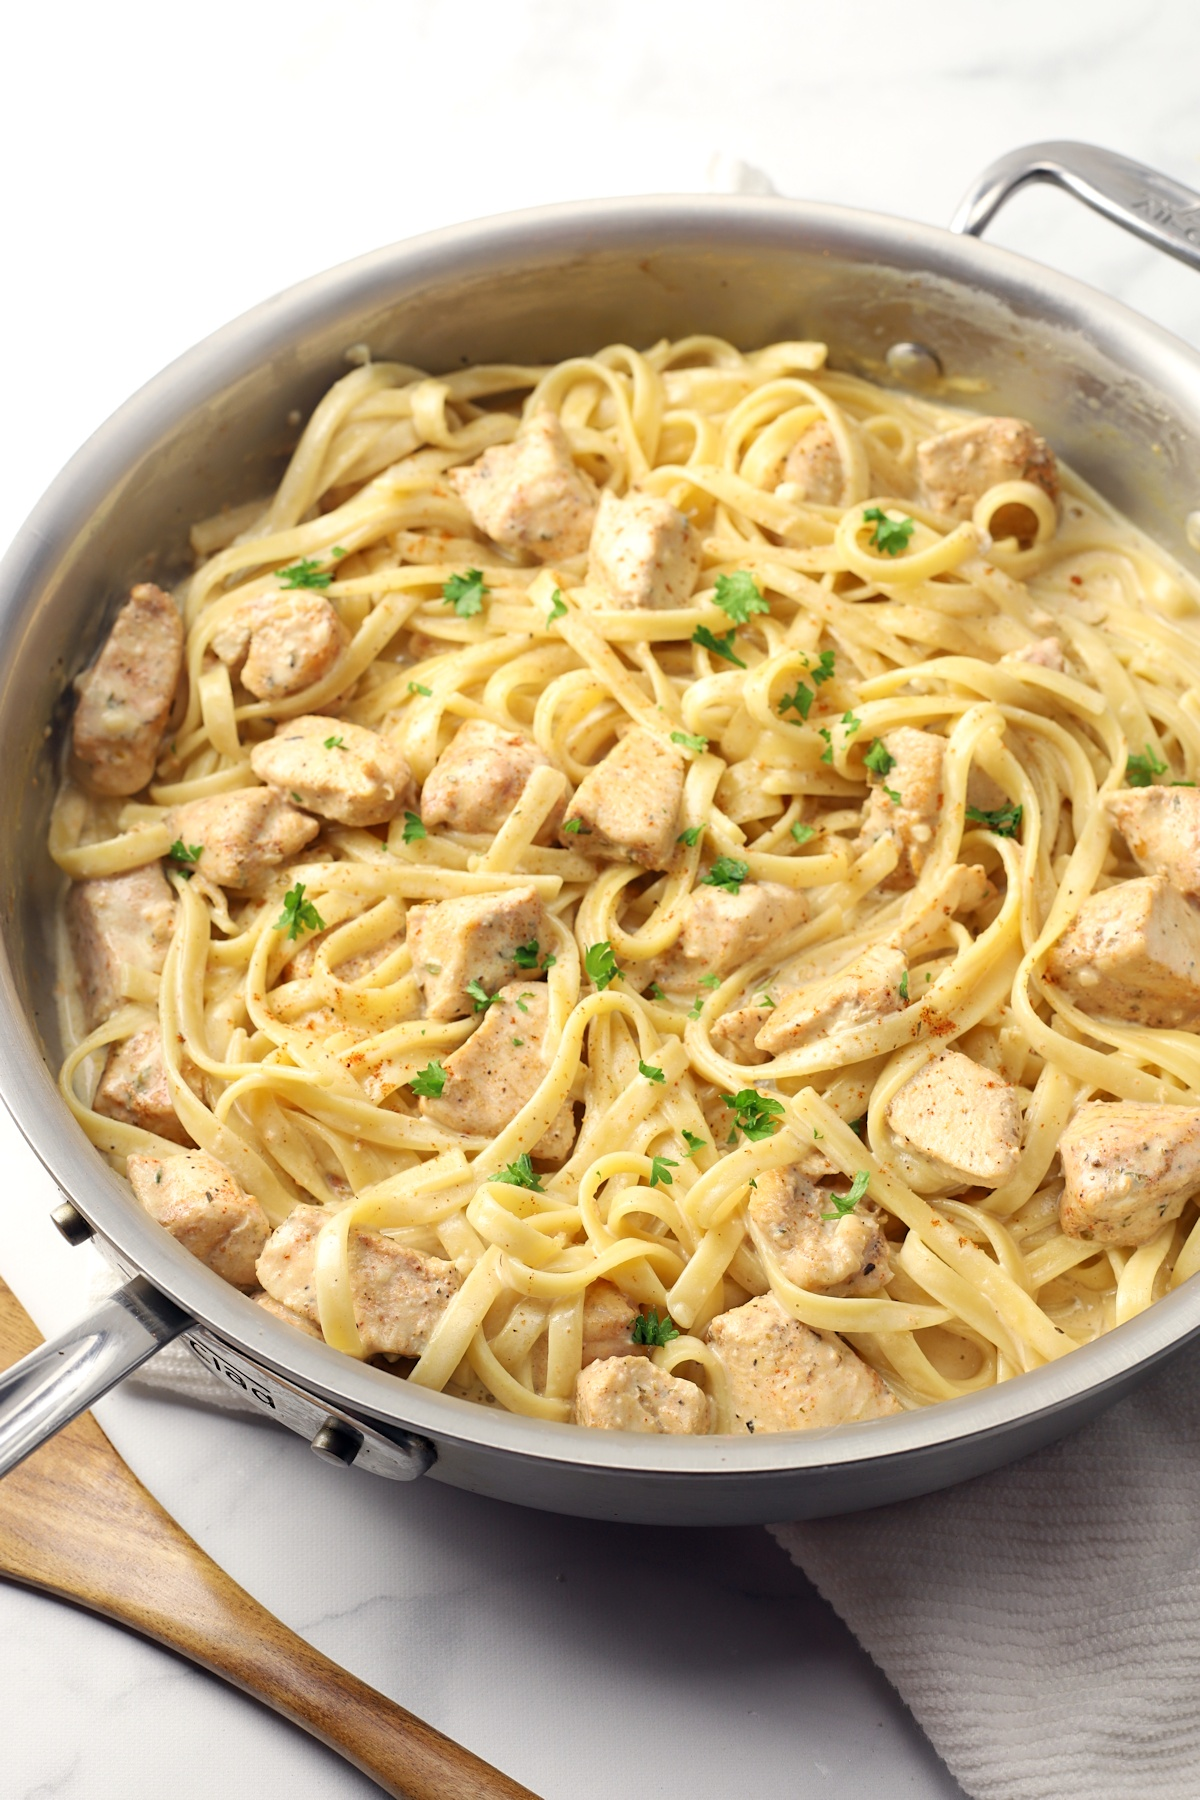 Saute pan filled with pasta and chicken.